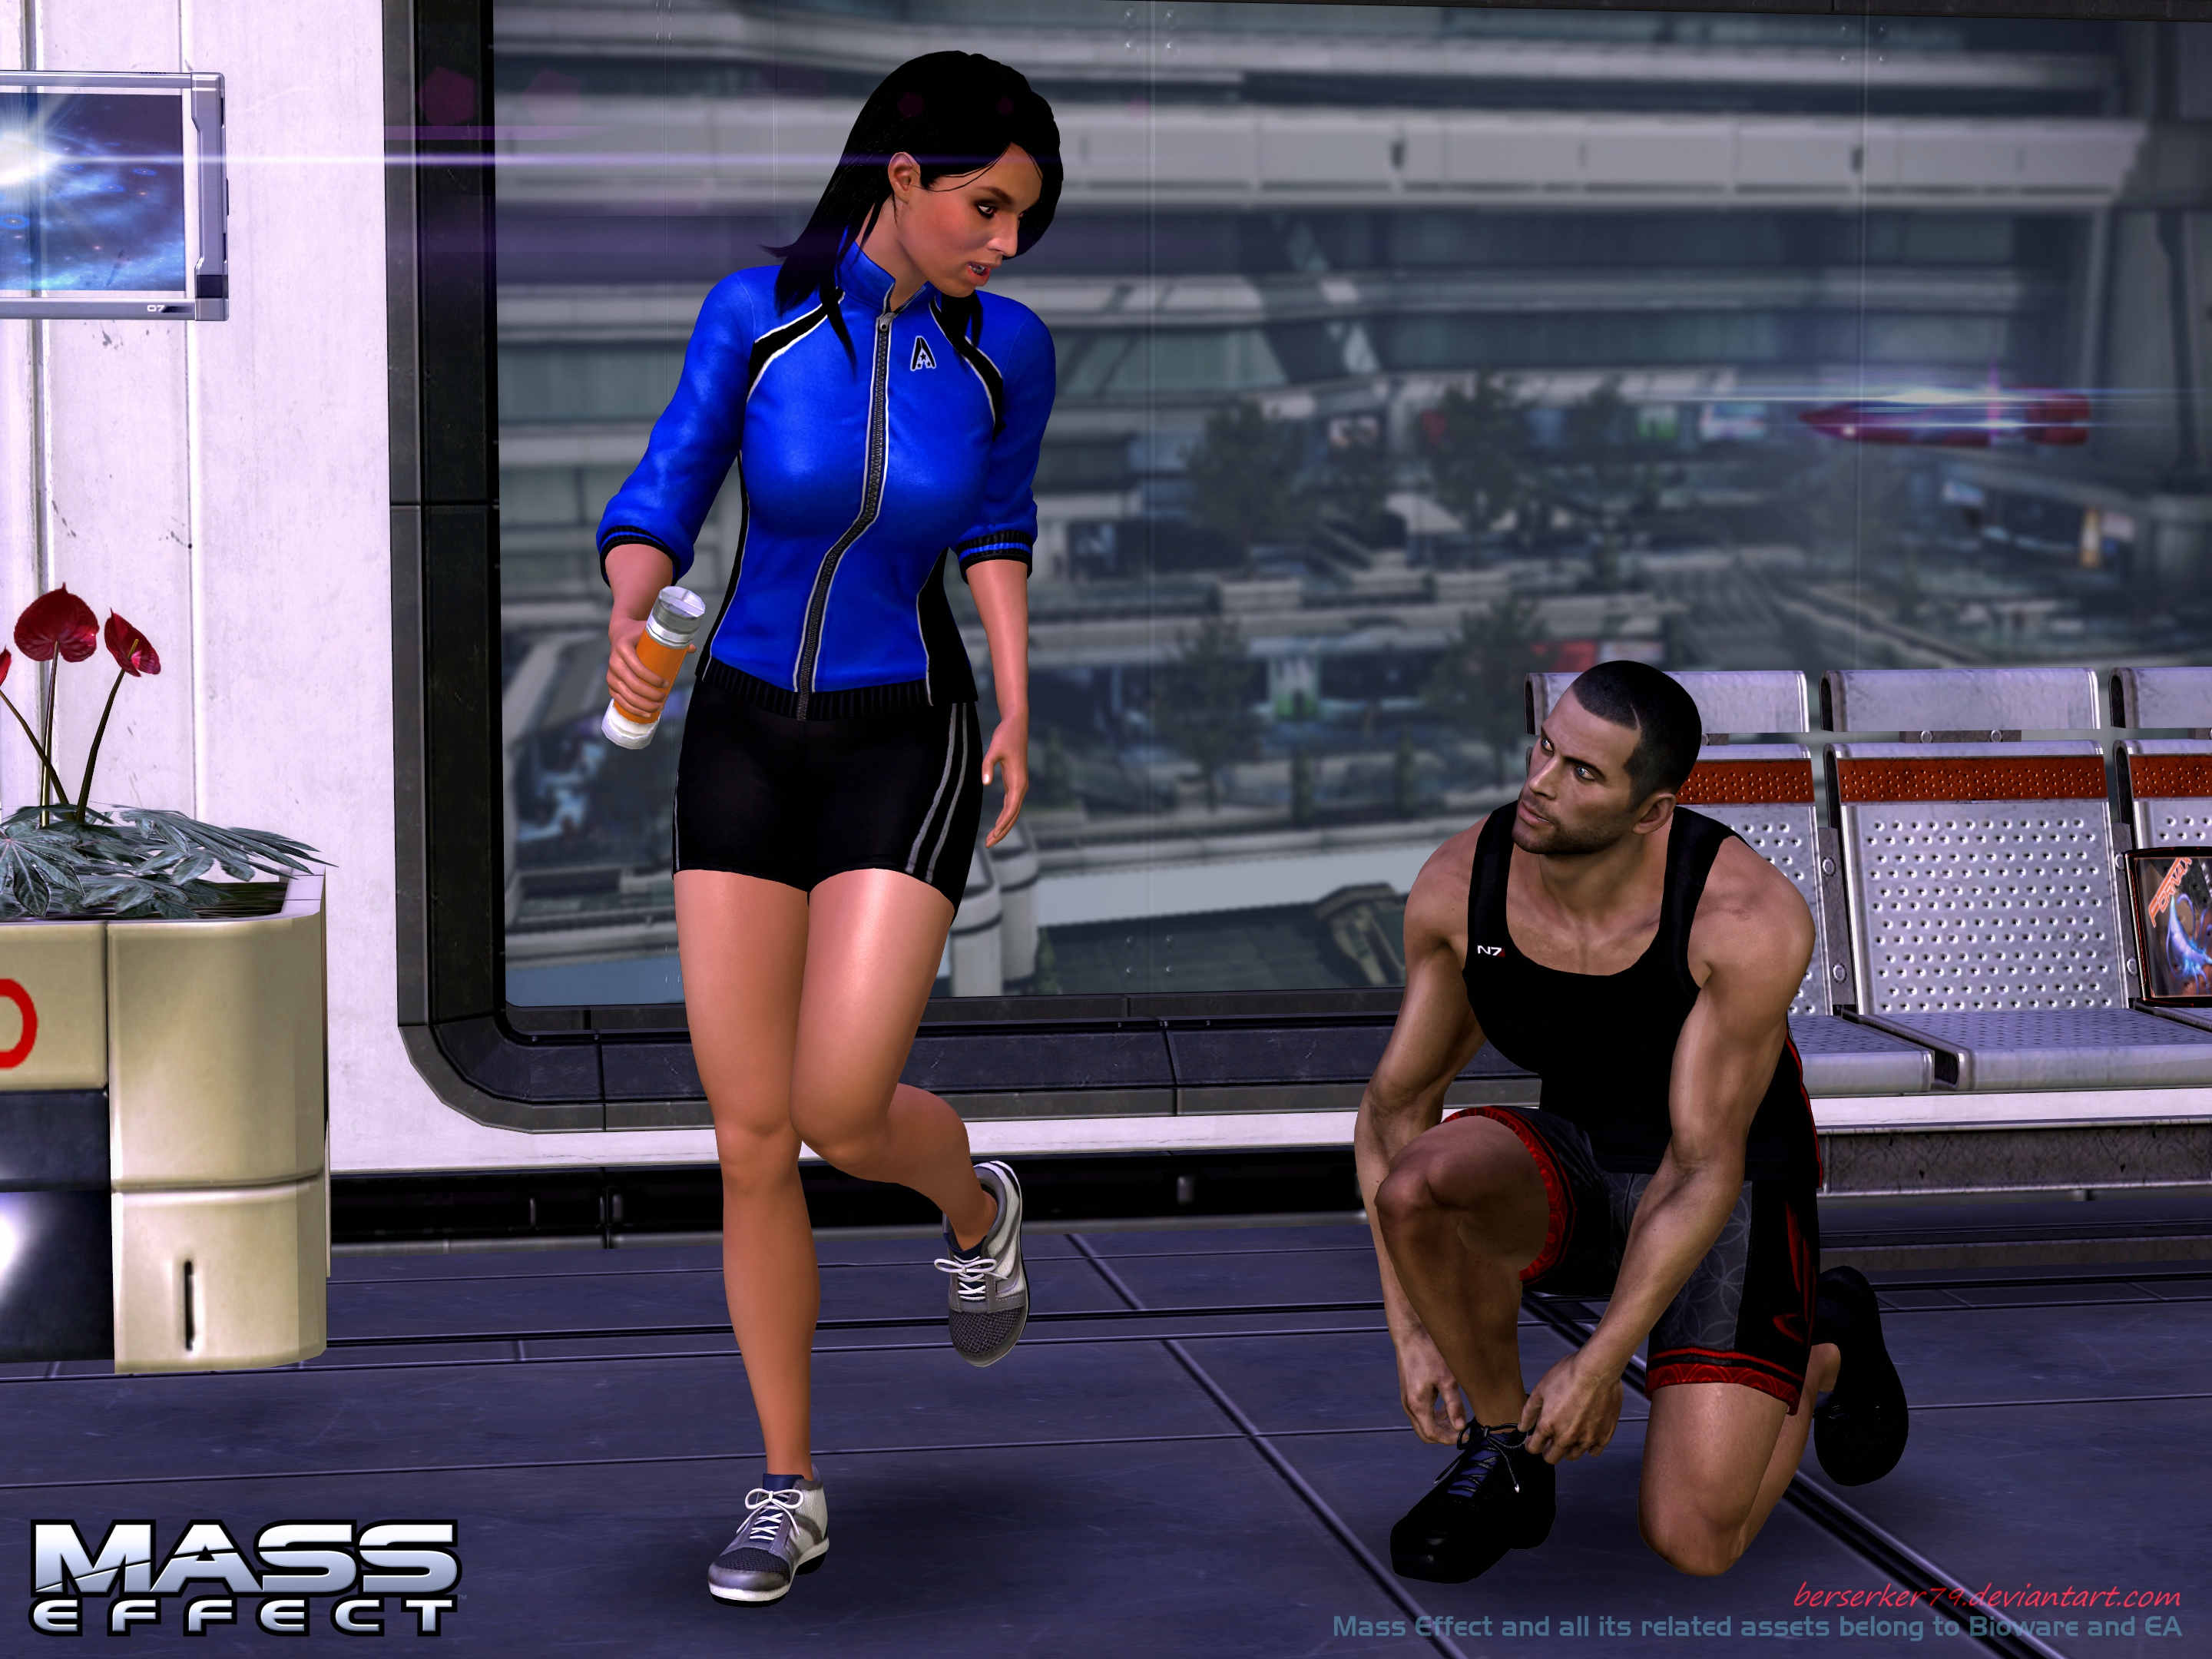 Mass Effect - RandR series: Jogging by Berserker79